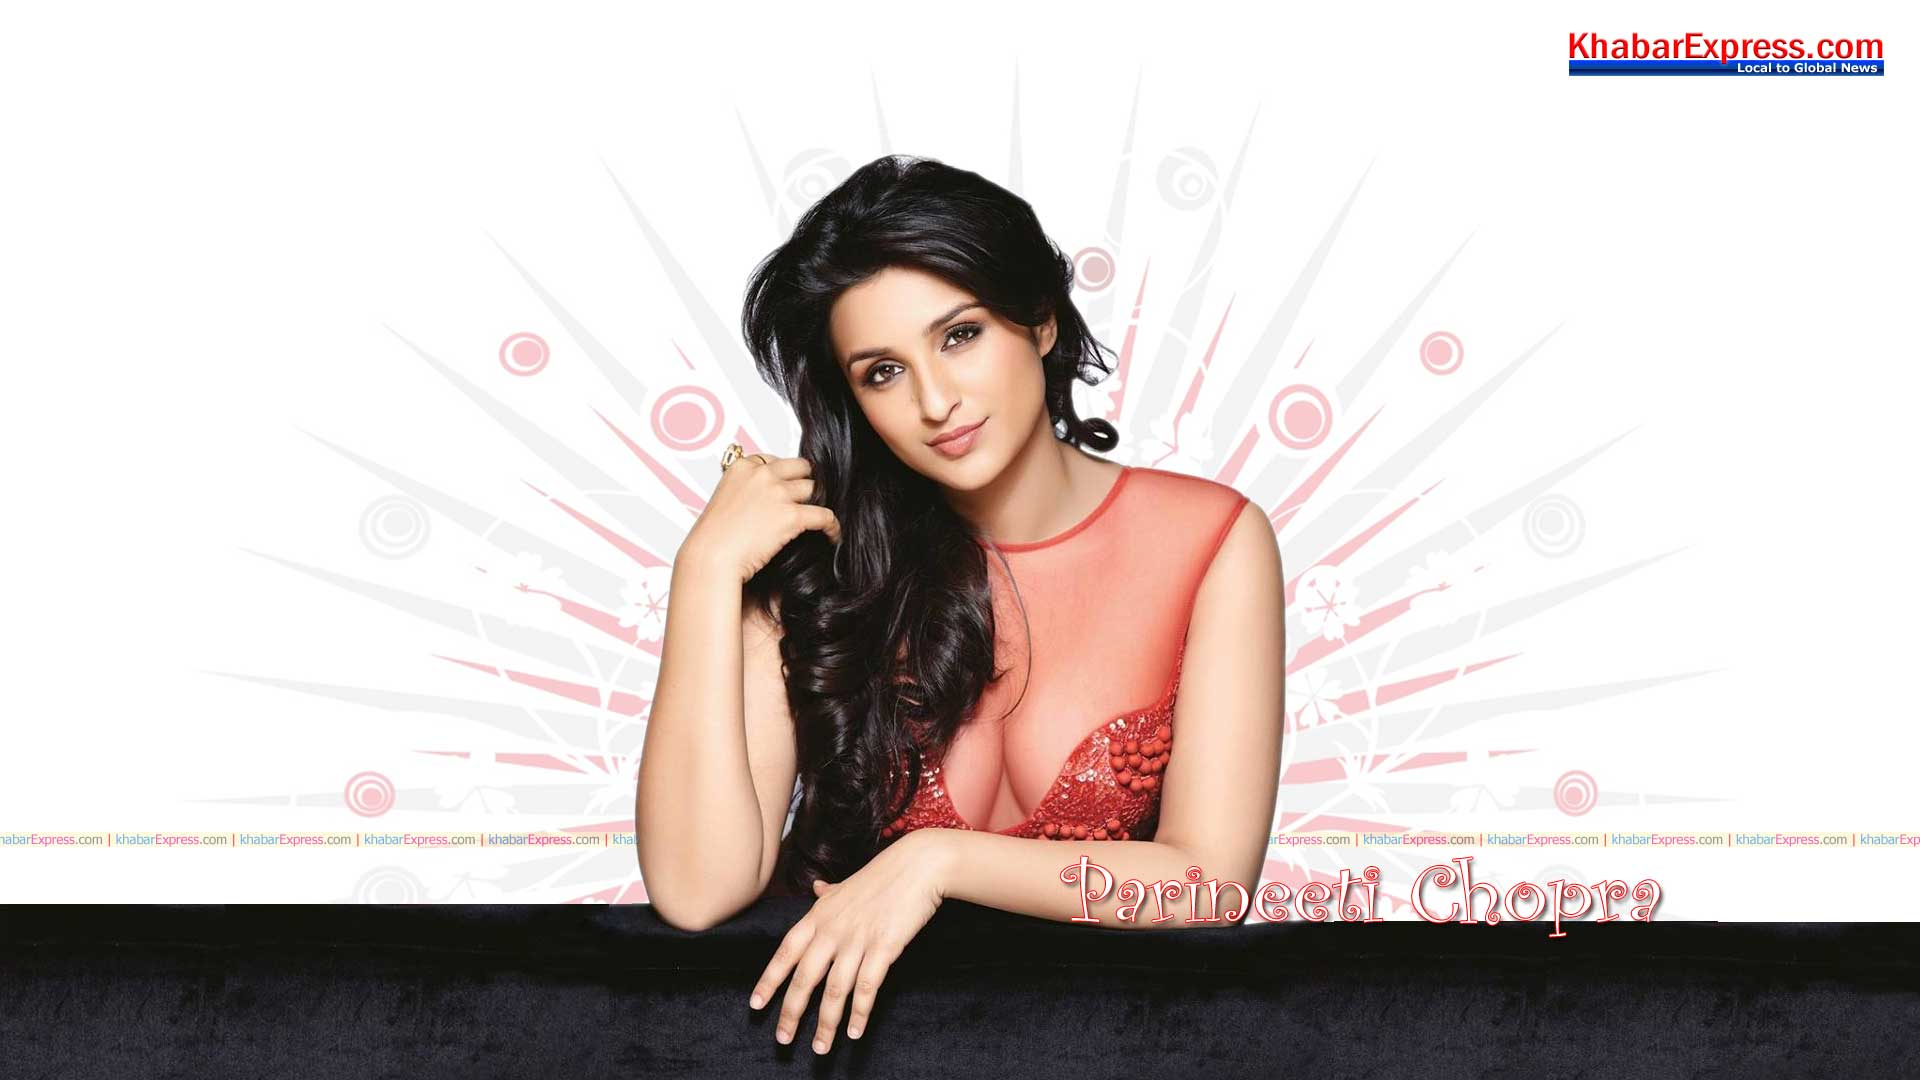 Parineeti Chopra Hot Wallpapers